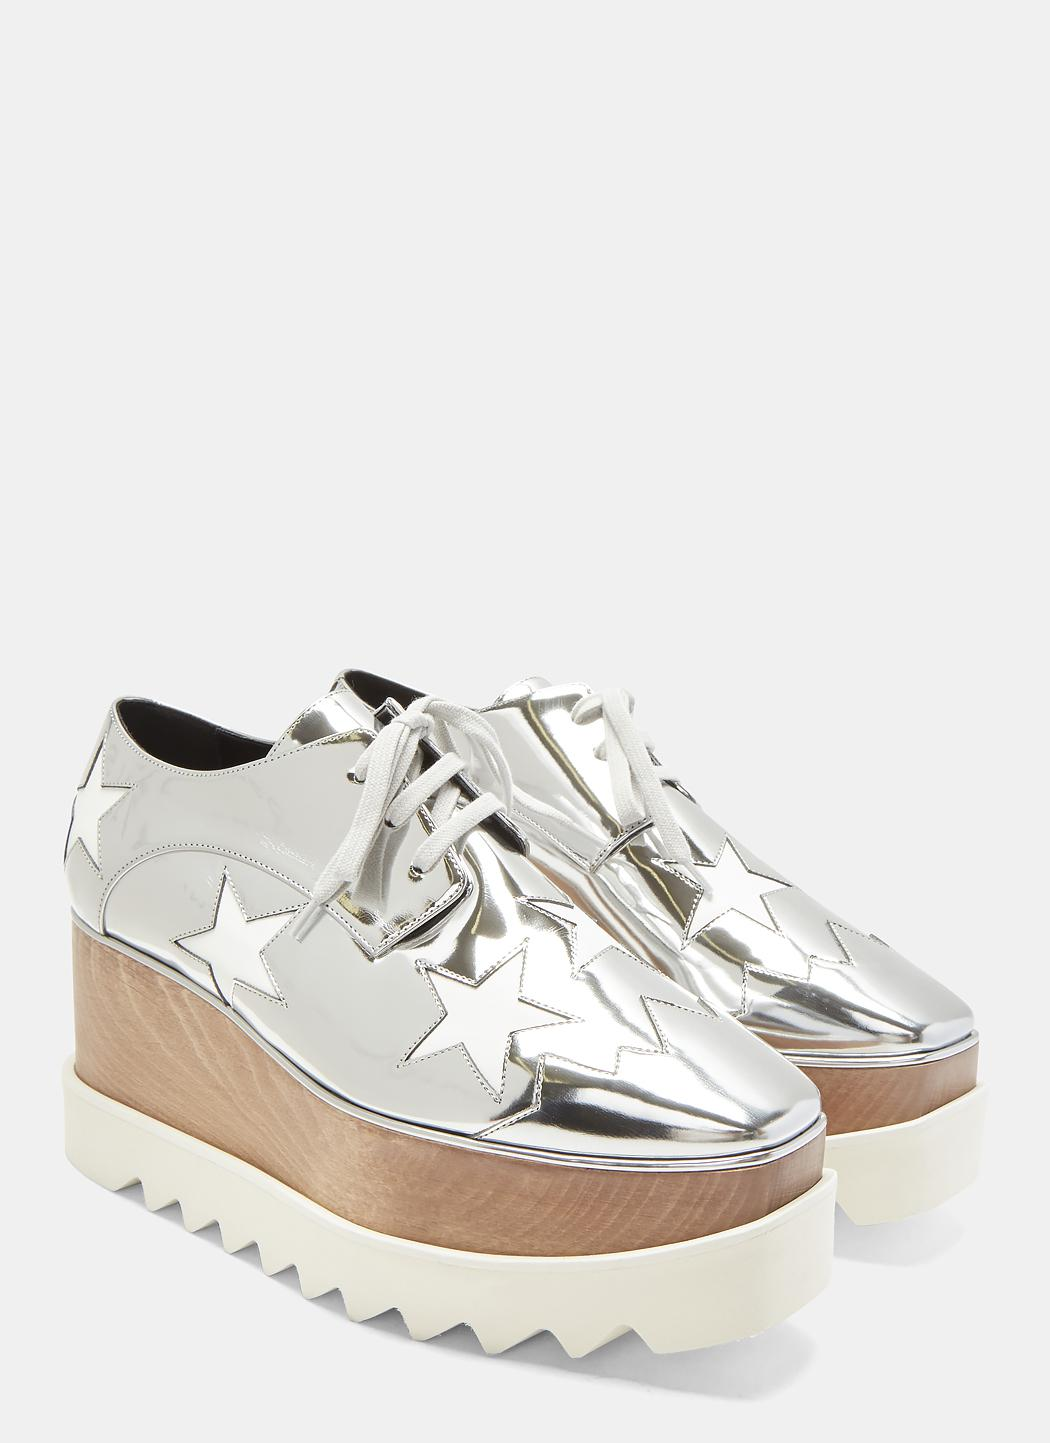 Stella Mccartney Elyse Stars Metallic Platform Shoes In Silver in ... d373442131a4